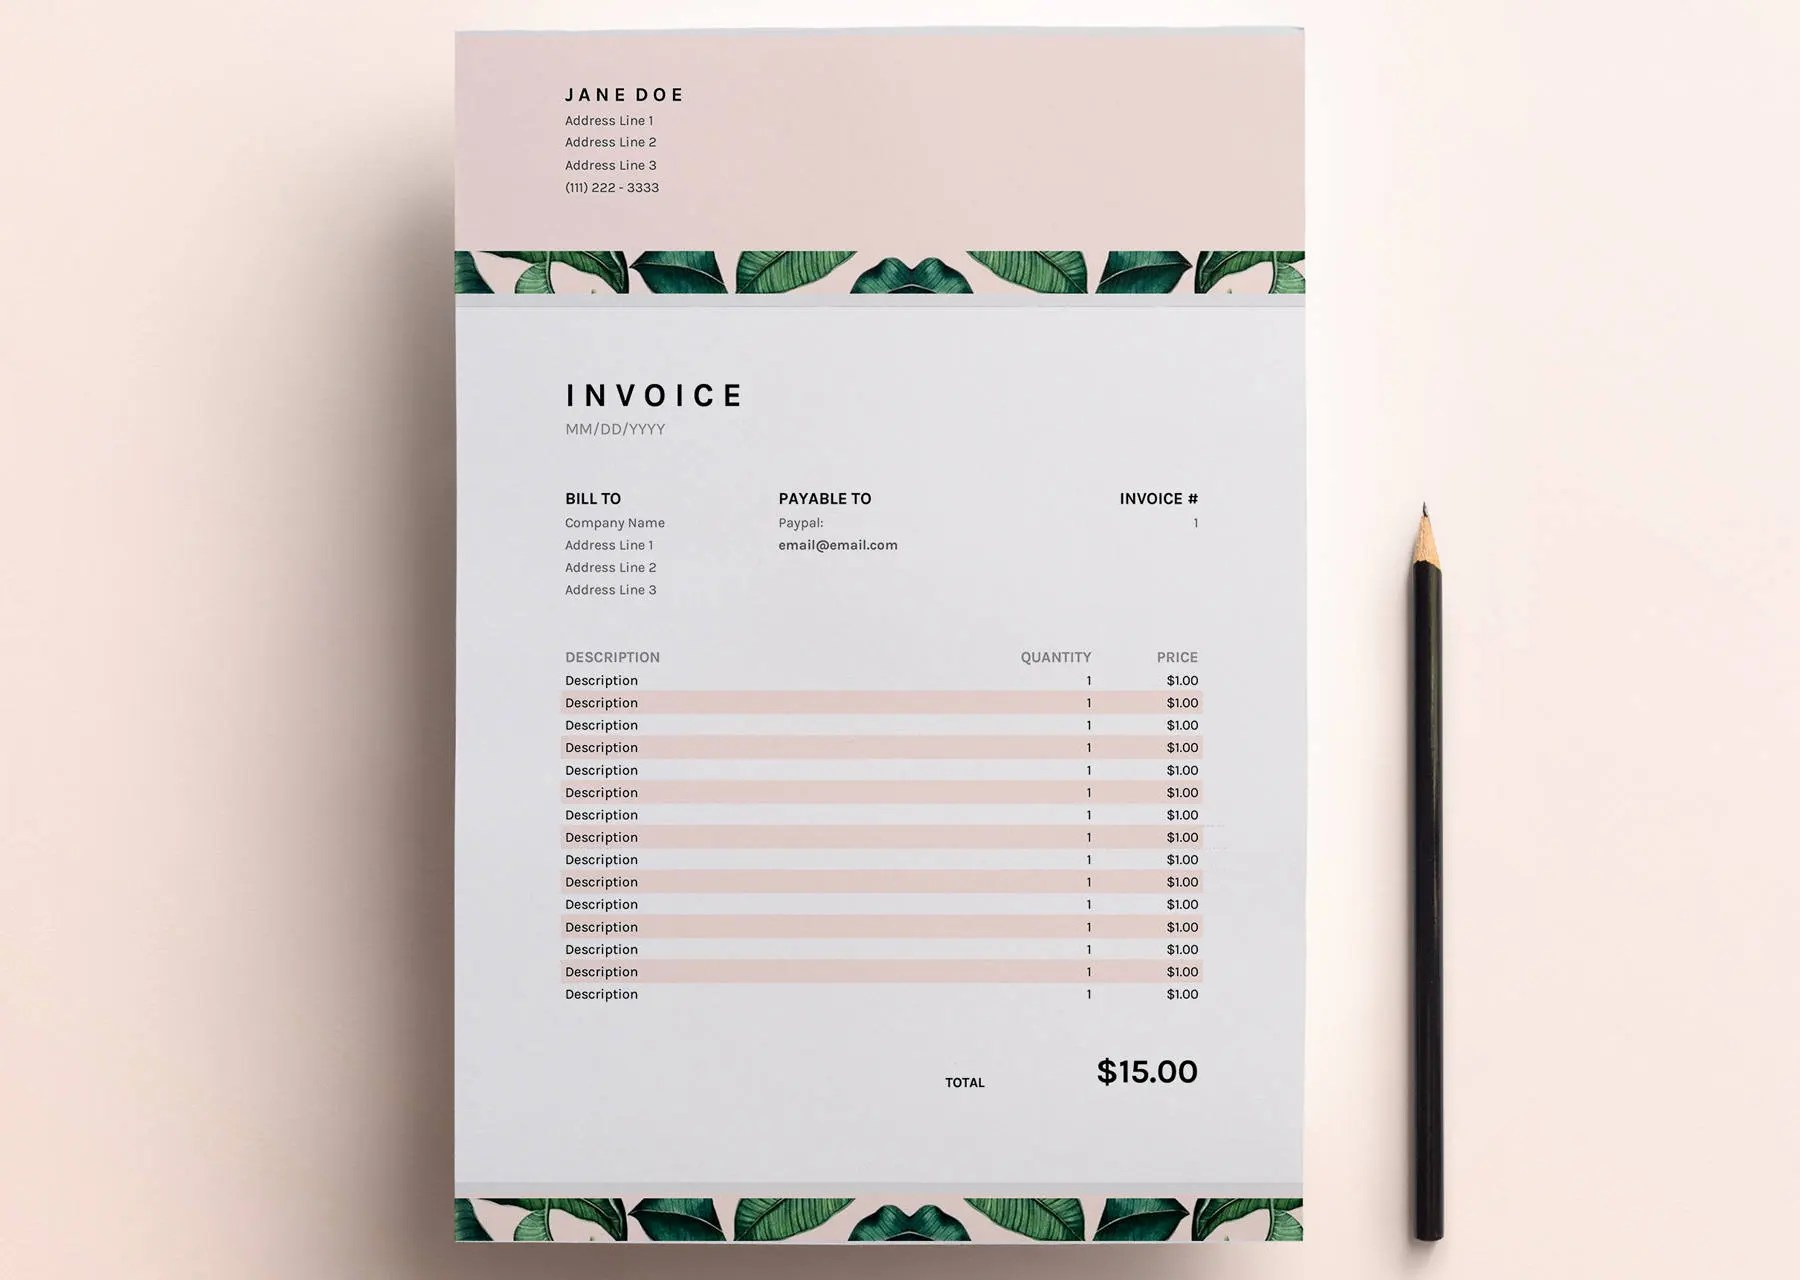 Invoice Template Business Invoice Spreadsheet Google Sheets   Etsy